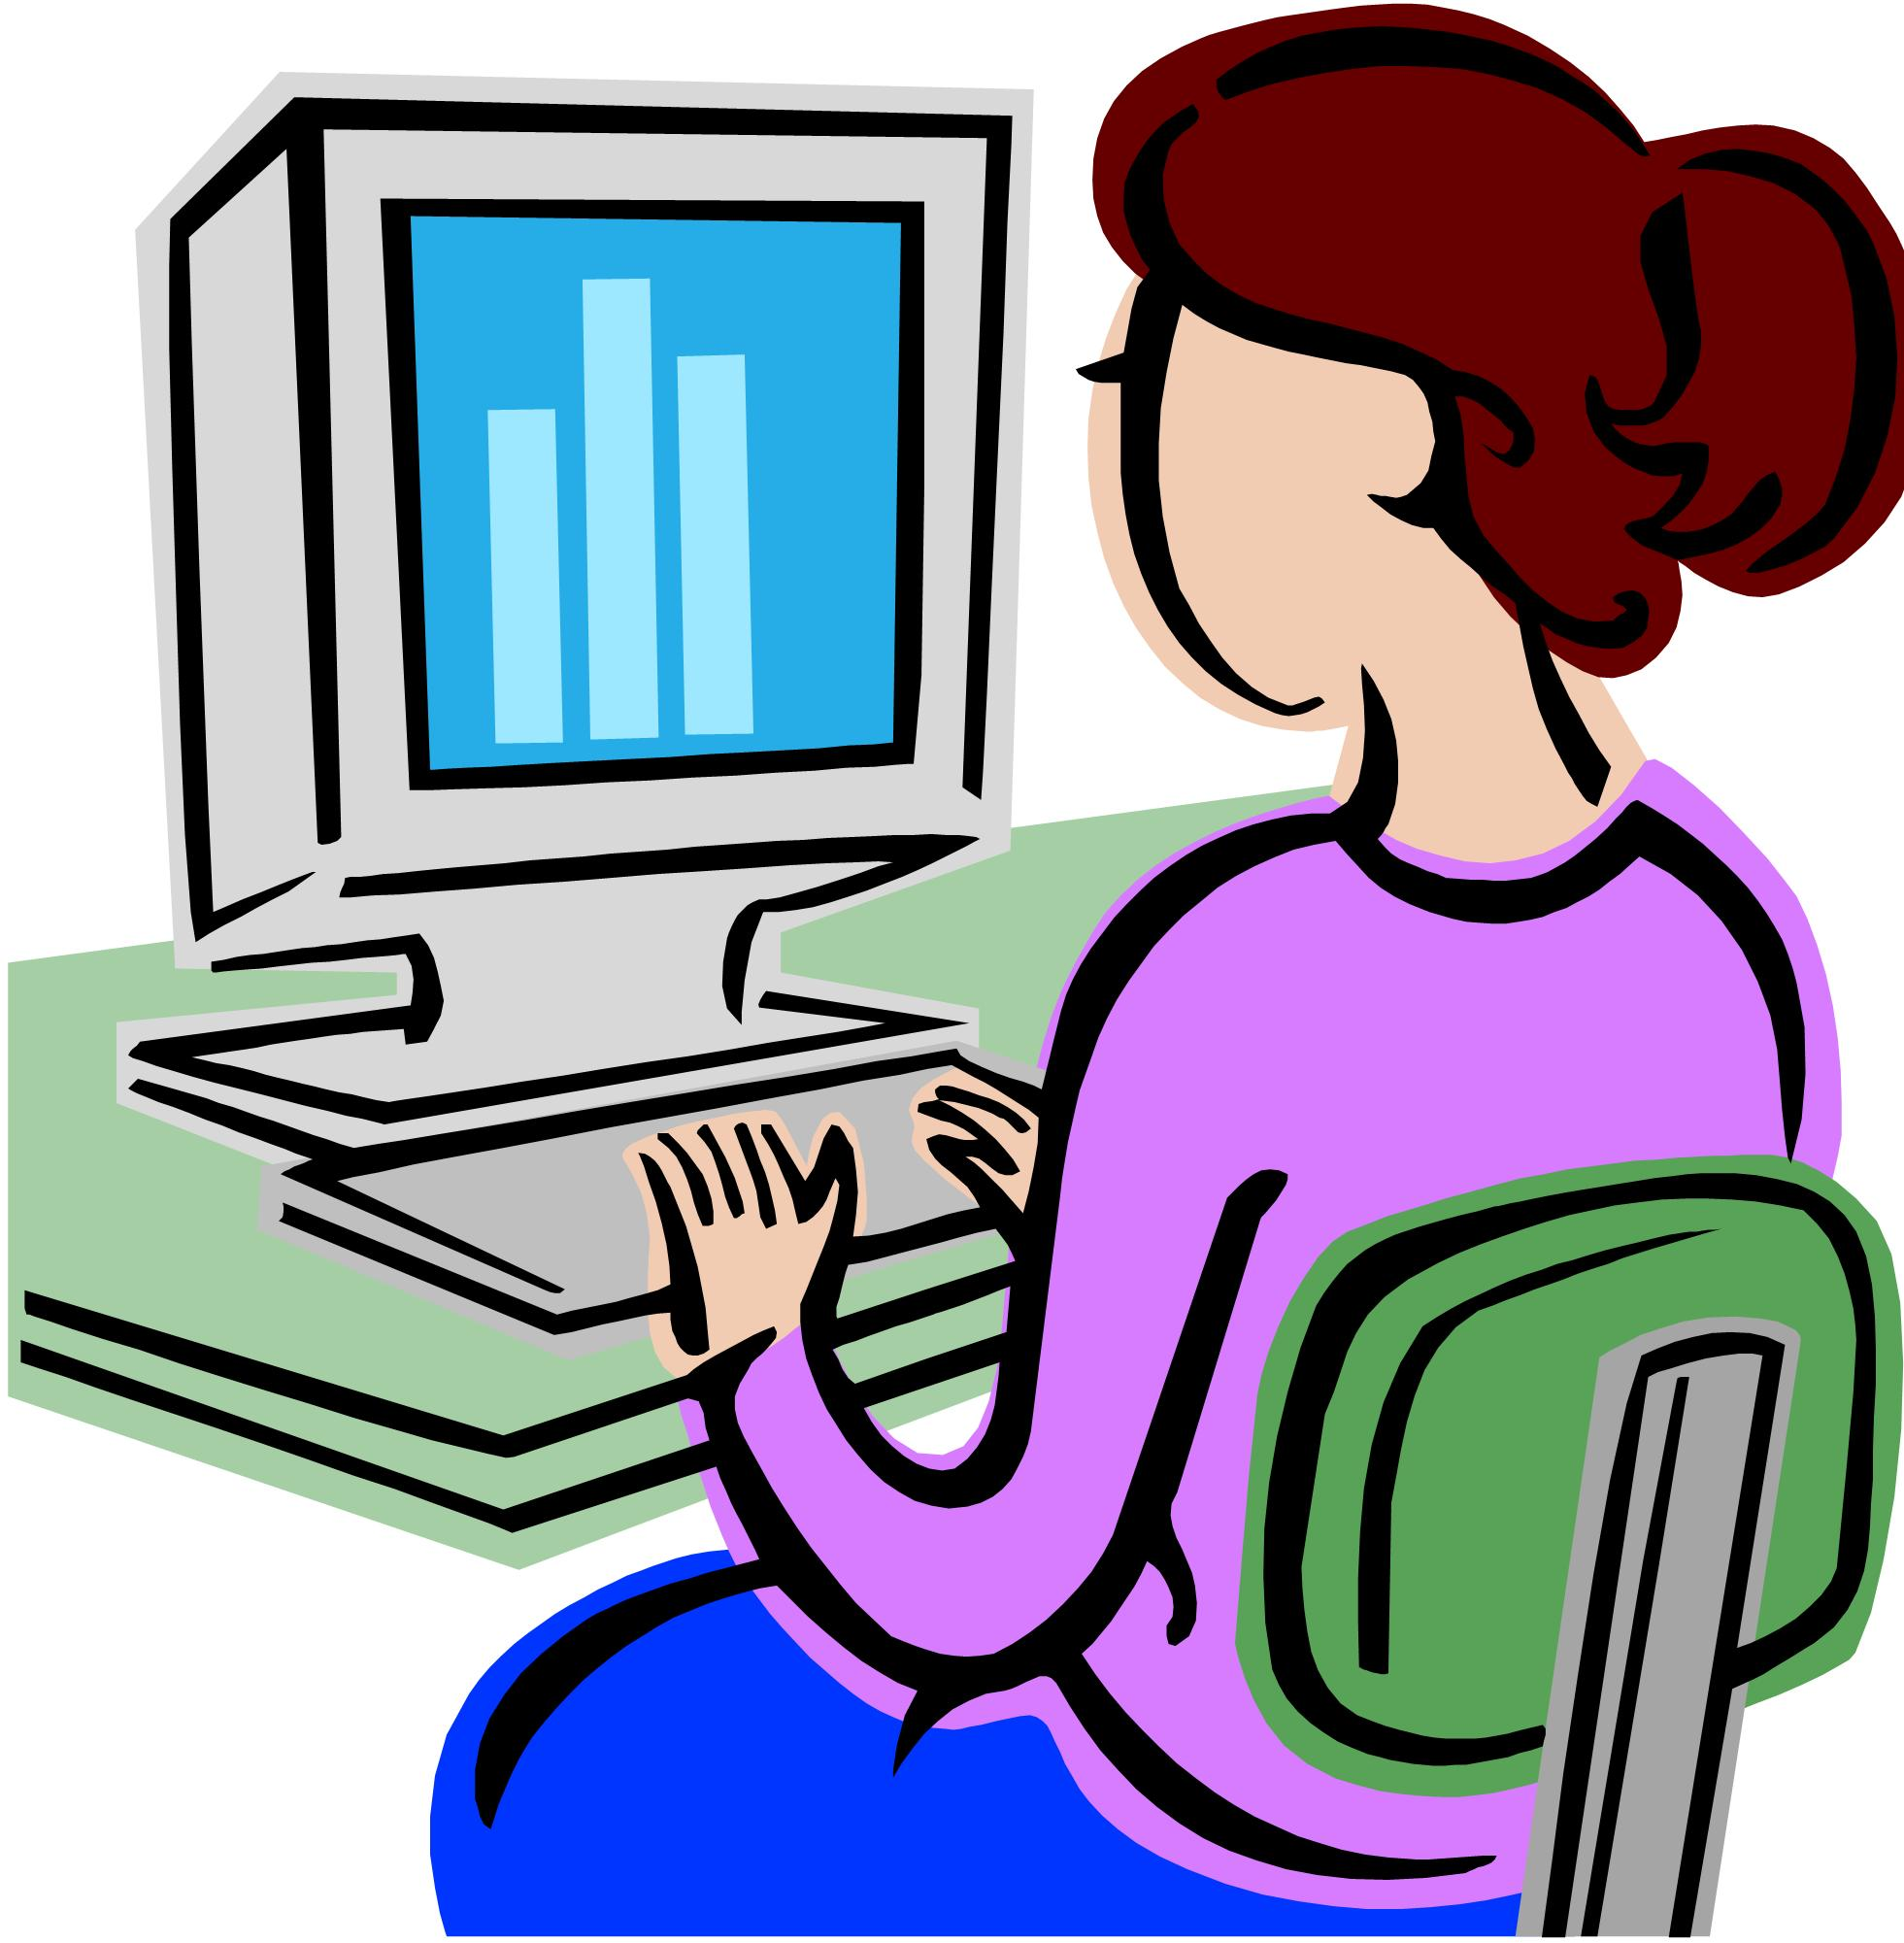 Pc clipart computer skill. Free images of download